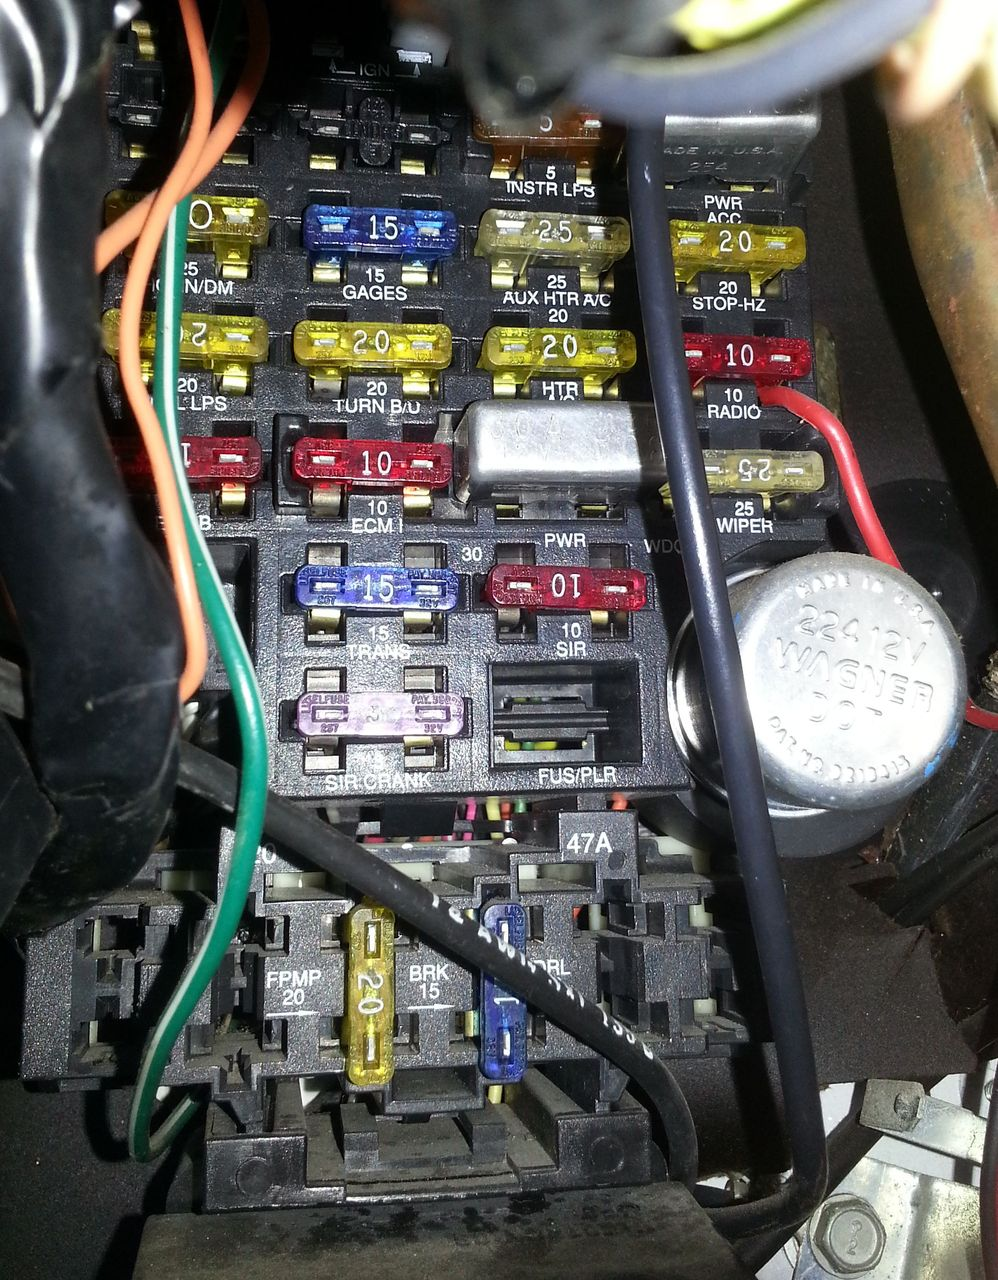 95 camry fuse box location wiring library. Black Bedroom Furniture Sets. Home Design Ideas